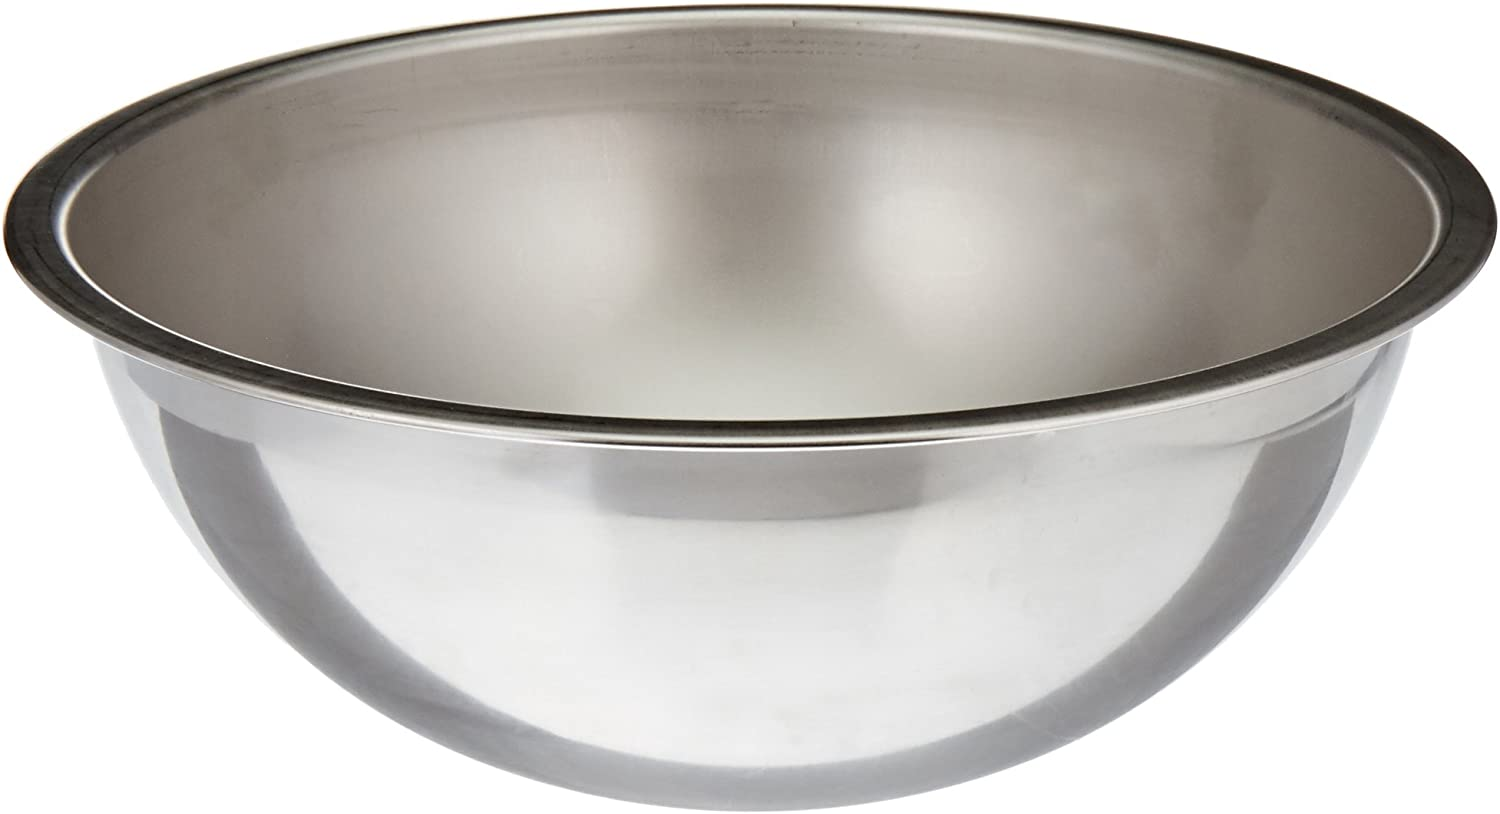 Stainless Steel Vollrath 69030 3-Quart Heavy-Duty Mixing Bowl